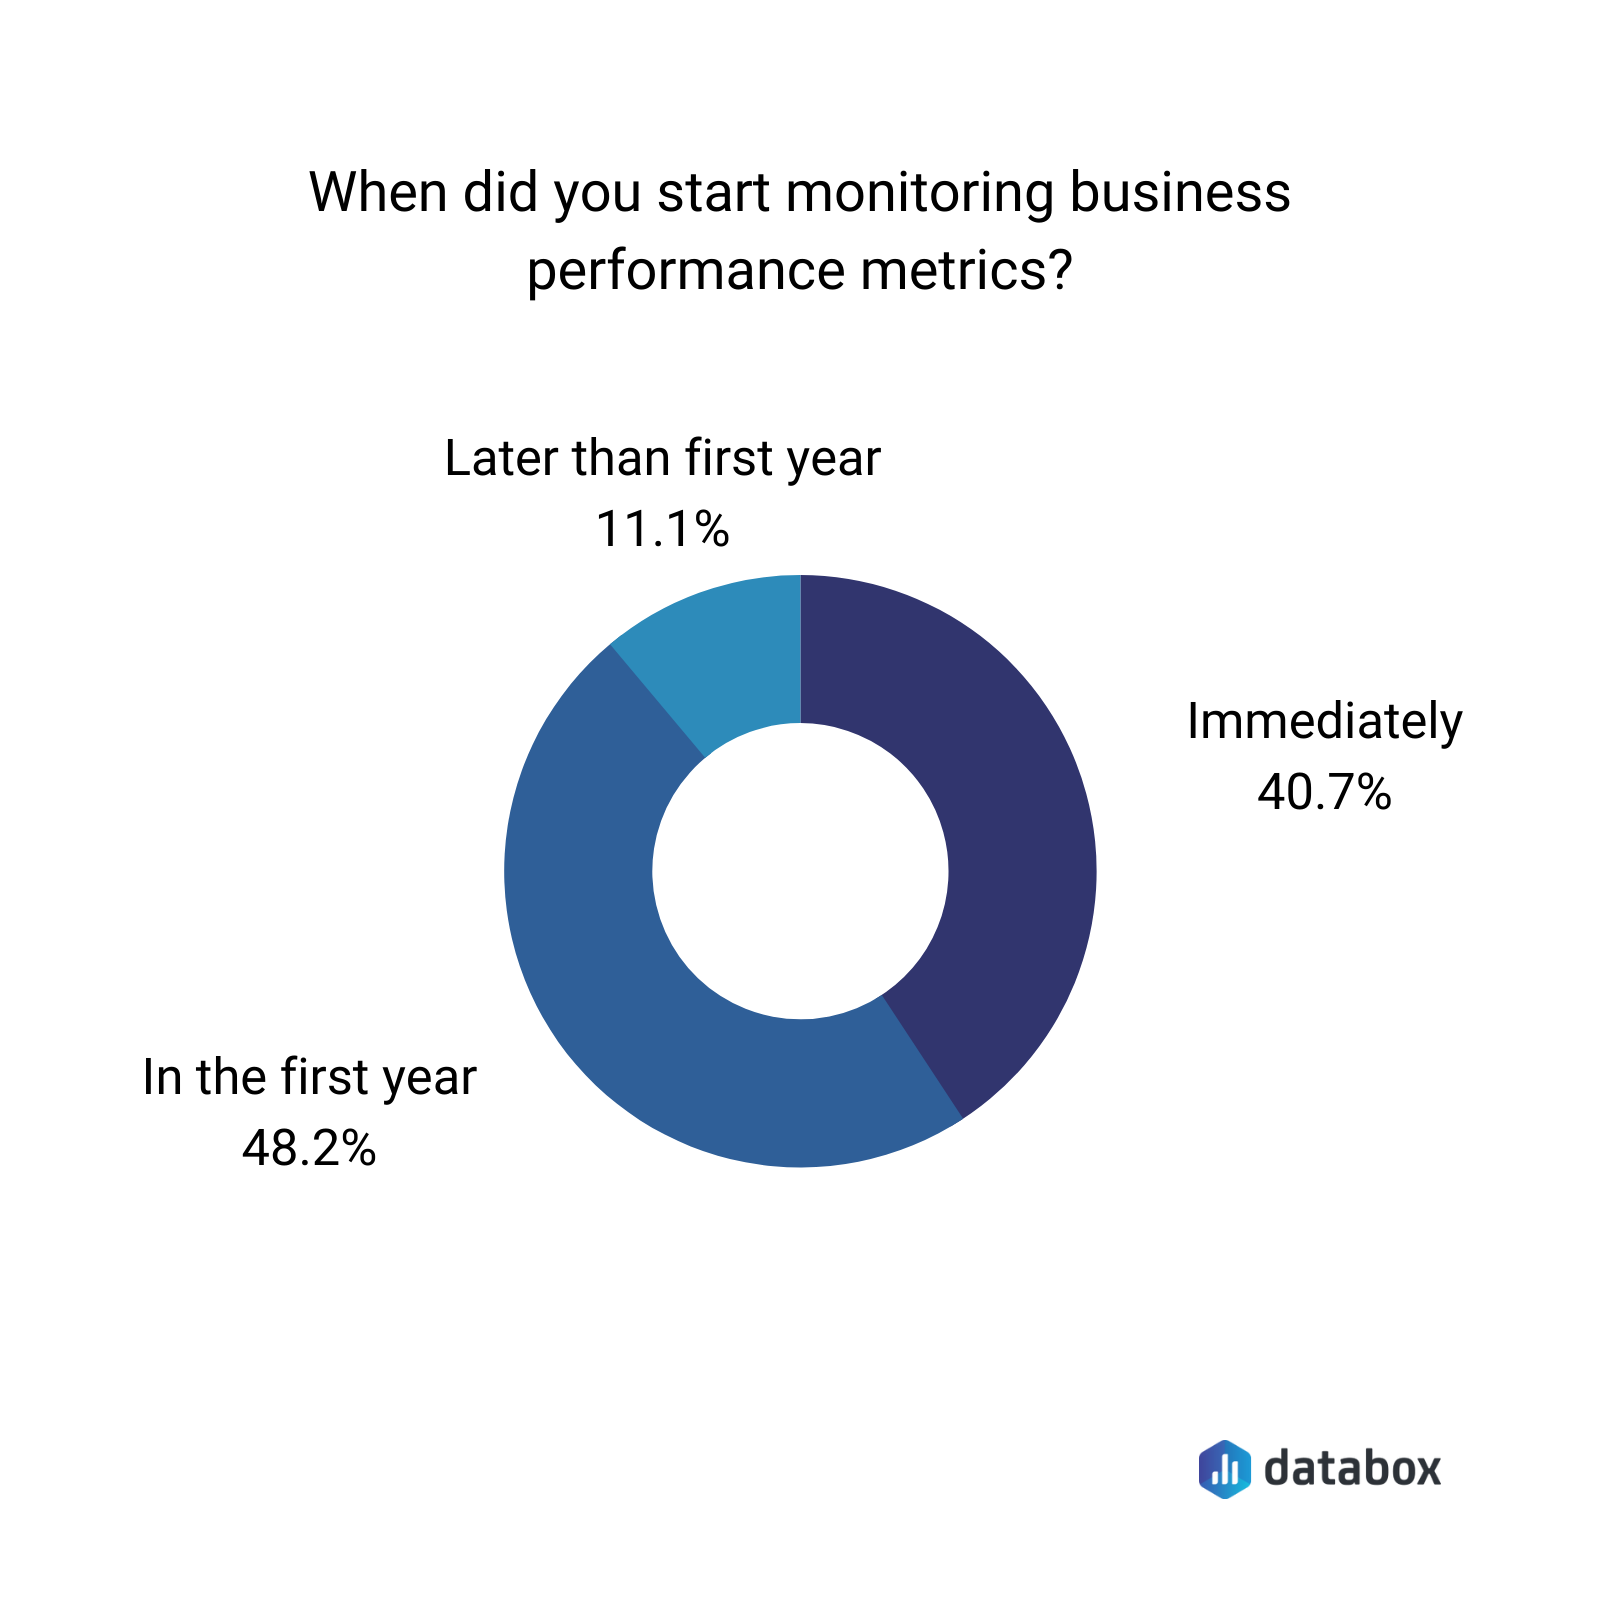 When did you start monitoring business performance metrics?